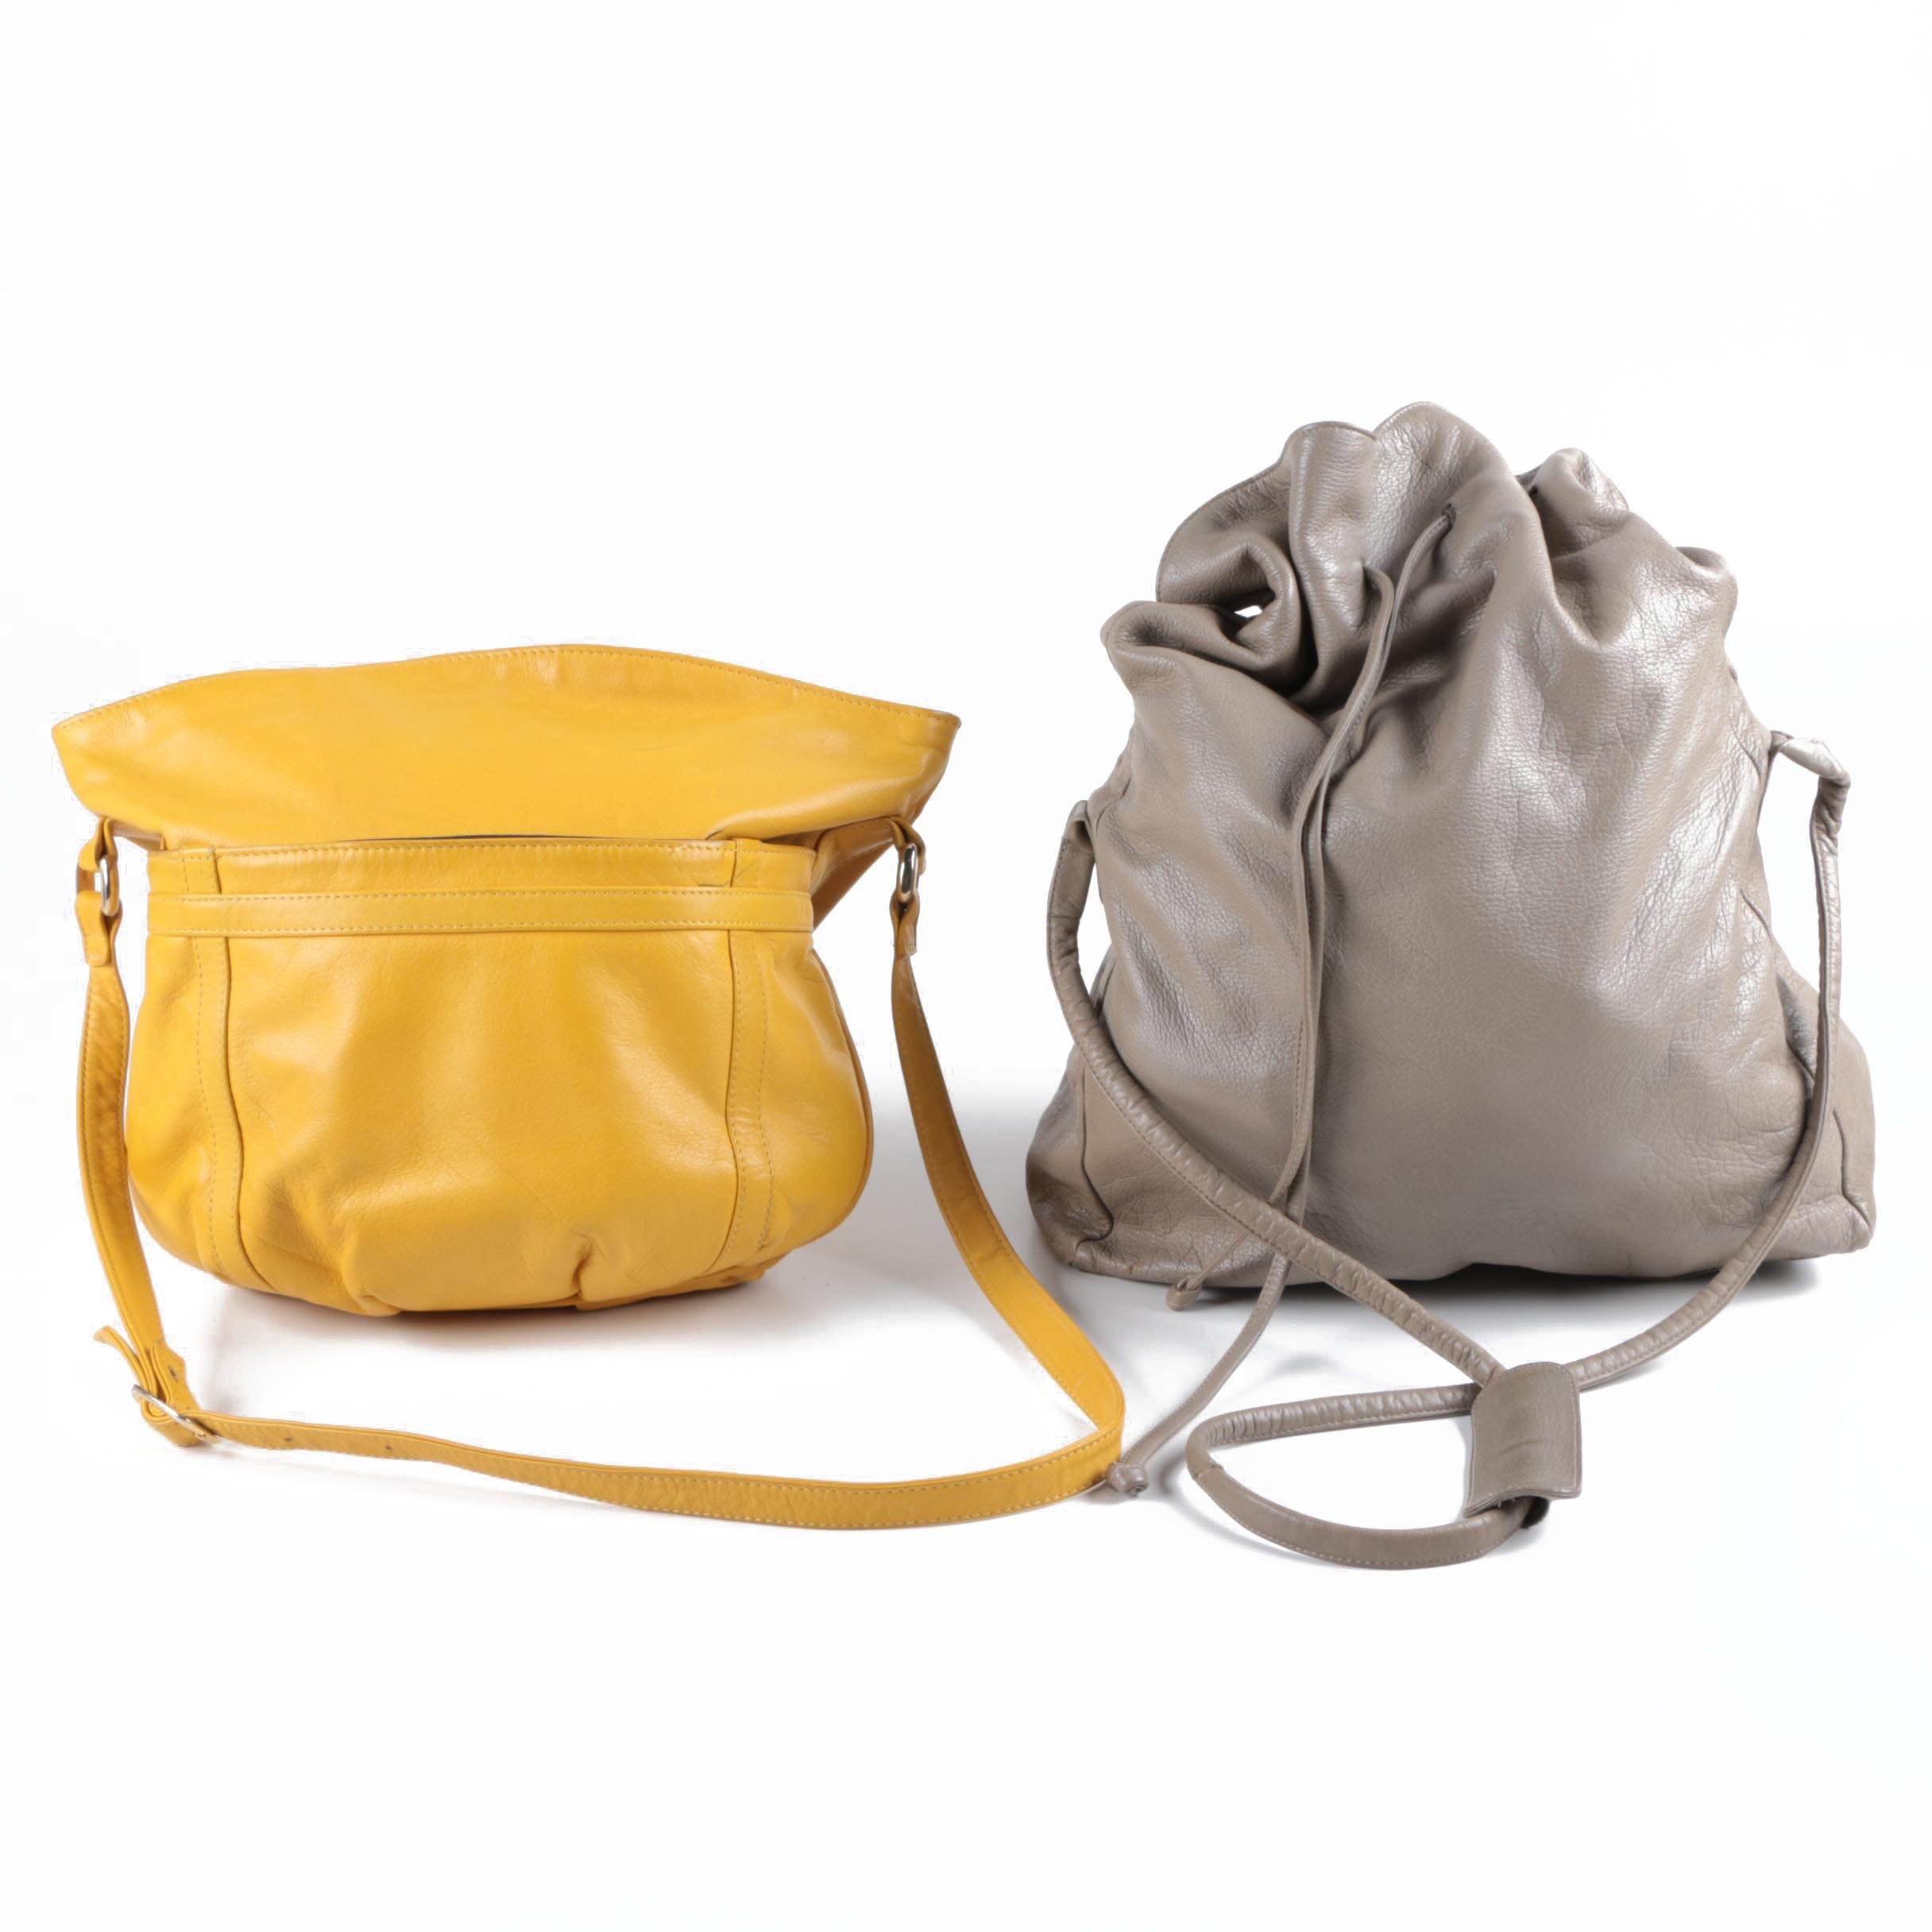 Two Leather Shoulder Bags